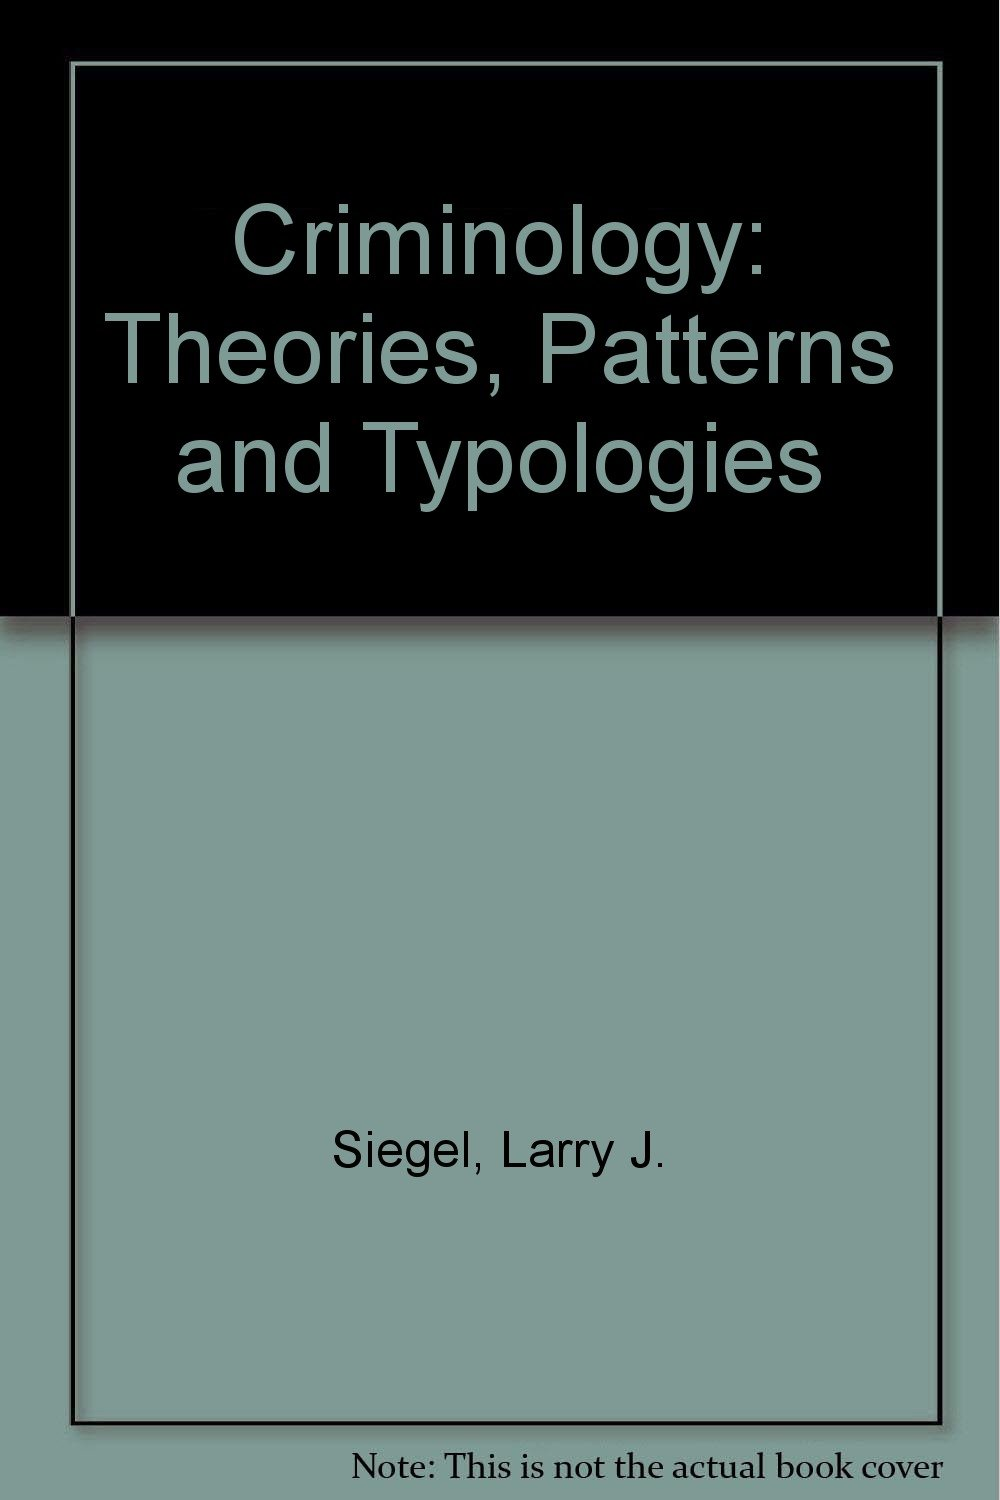 Criminology: Theories, Patterns and Typologies: Larry J. Siegel:  9780314696786: Amazon.com: Books